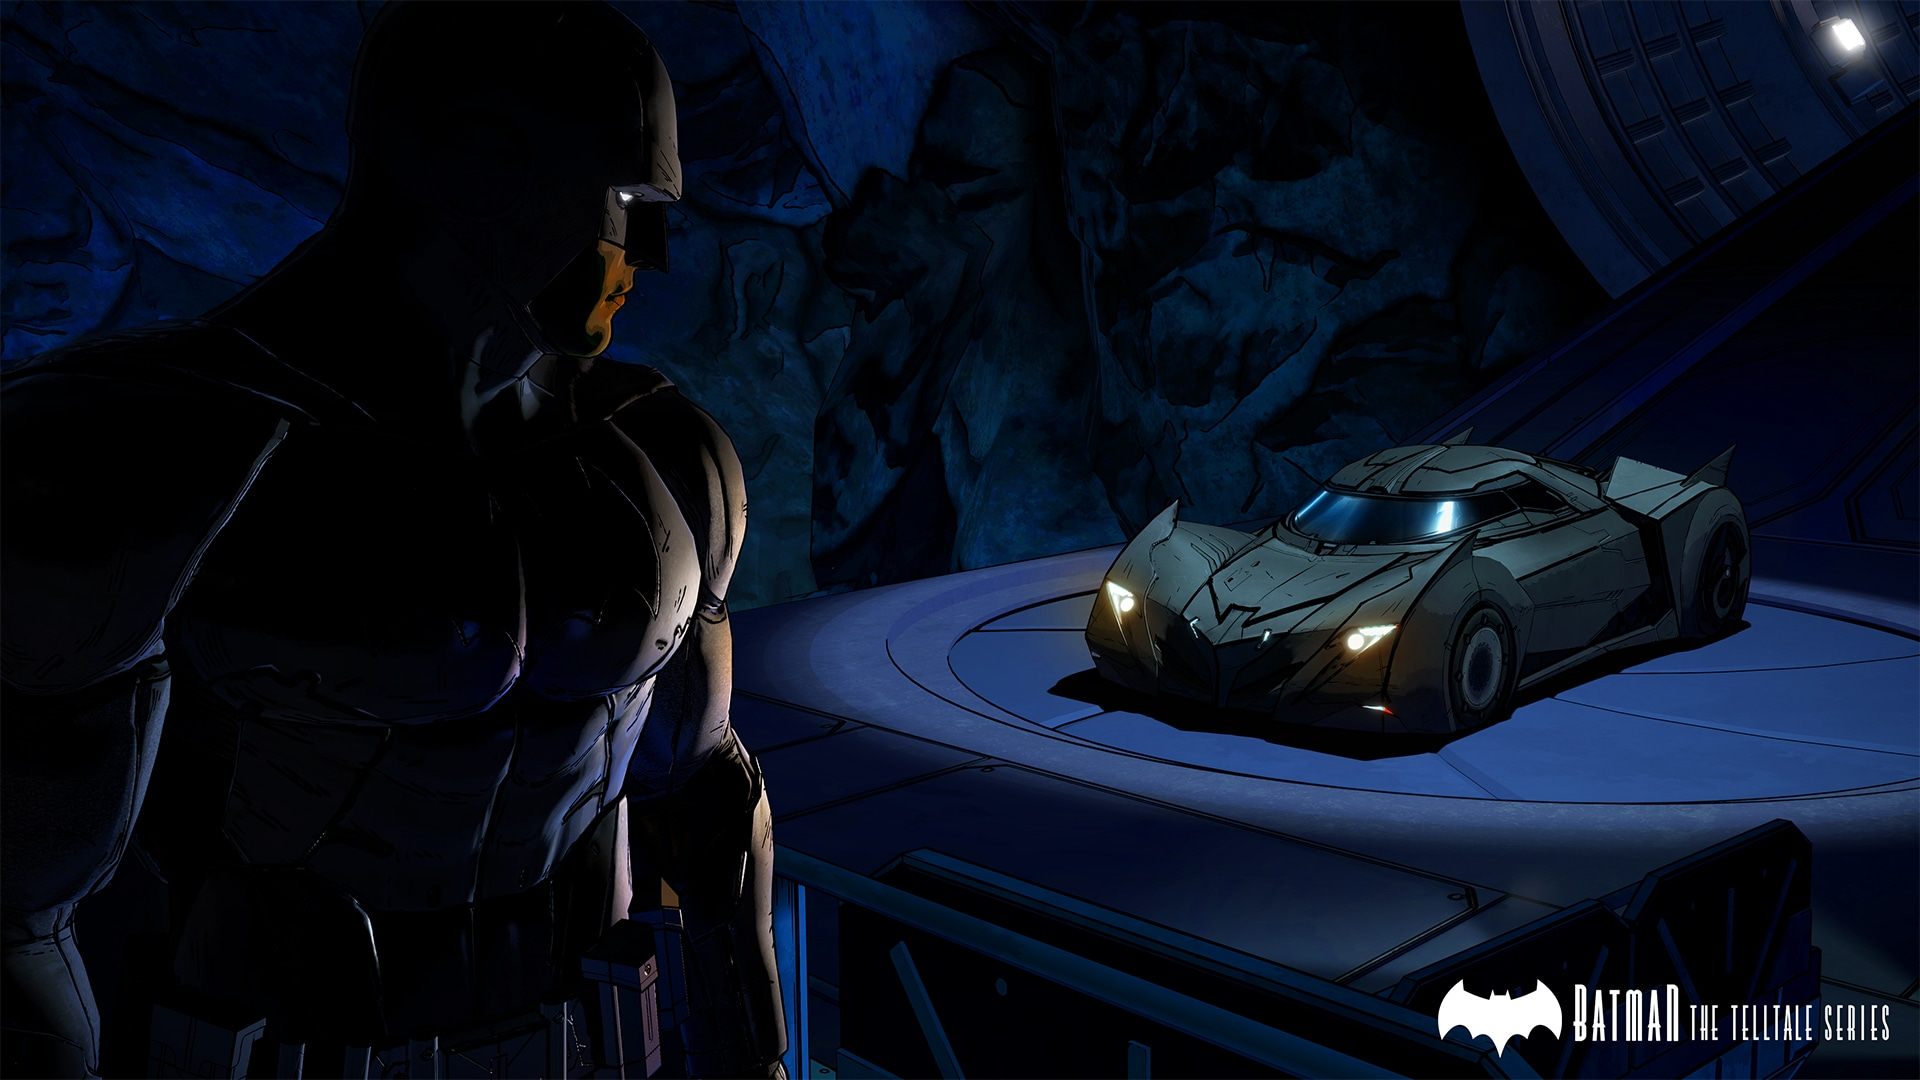 batcave-batmobile-1920x1080_6885.1920